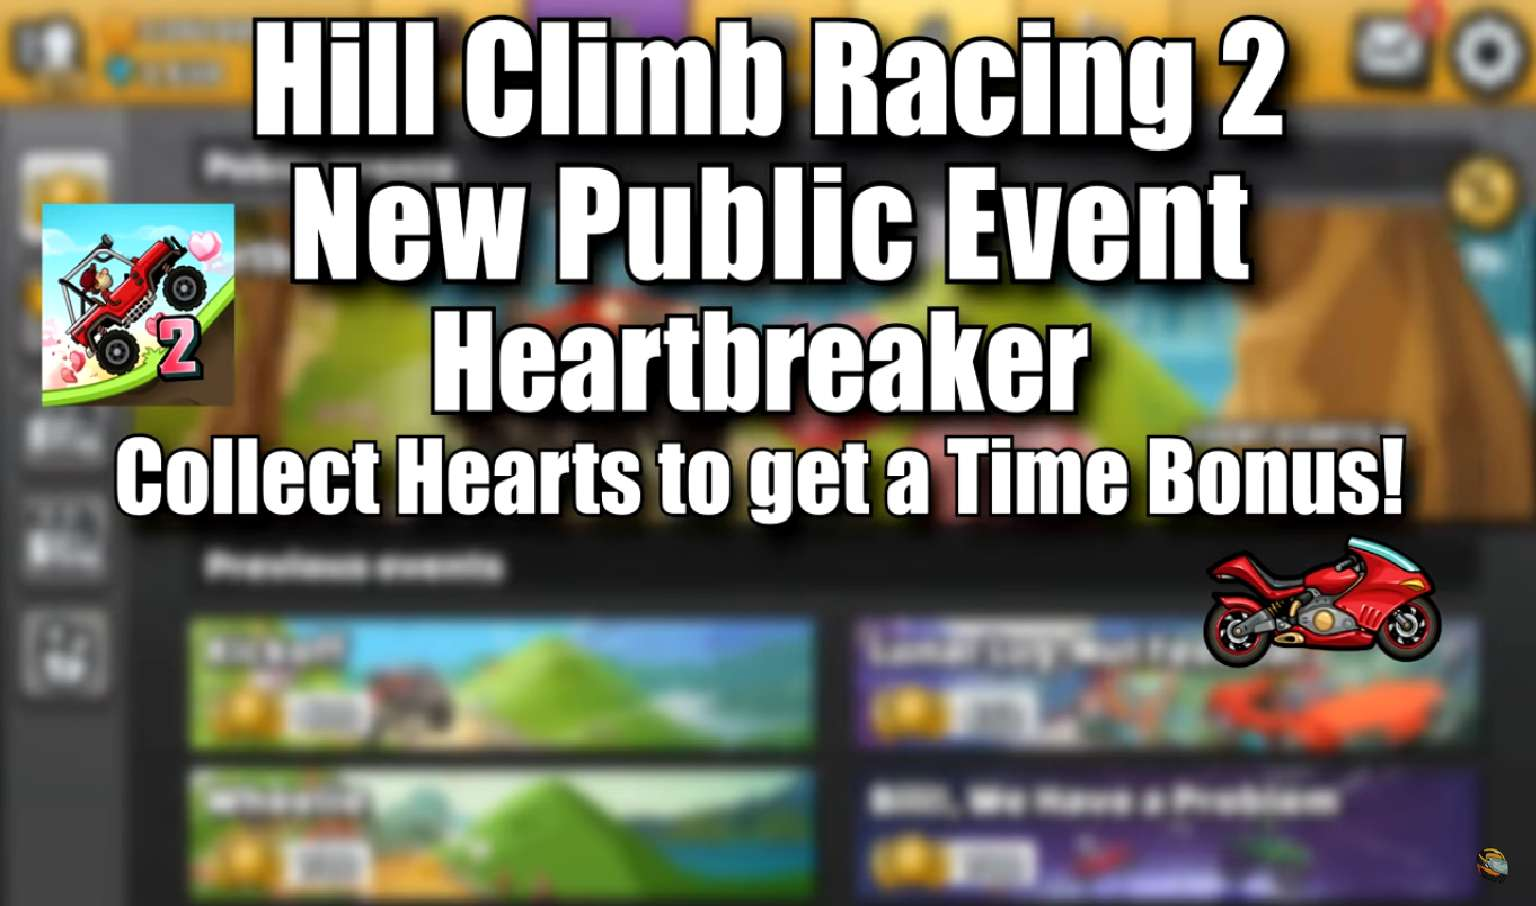 Hill Climb Racing 2 Brings In Valentine's Day Event With Heartbreaker Race